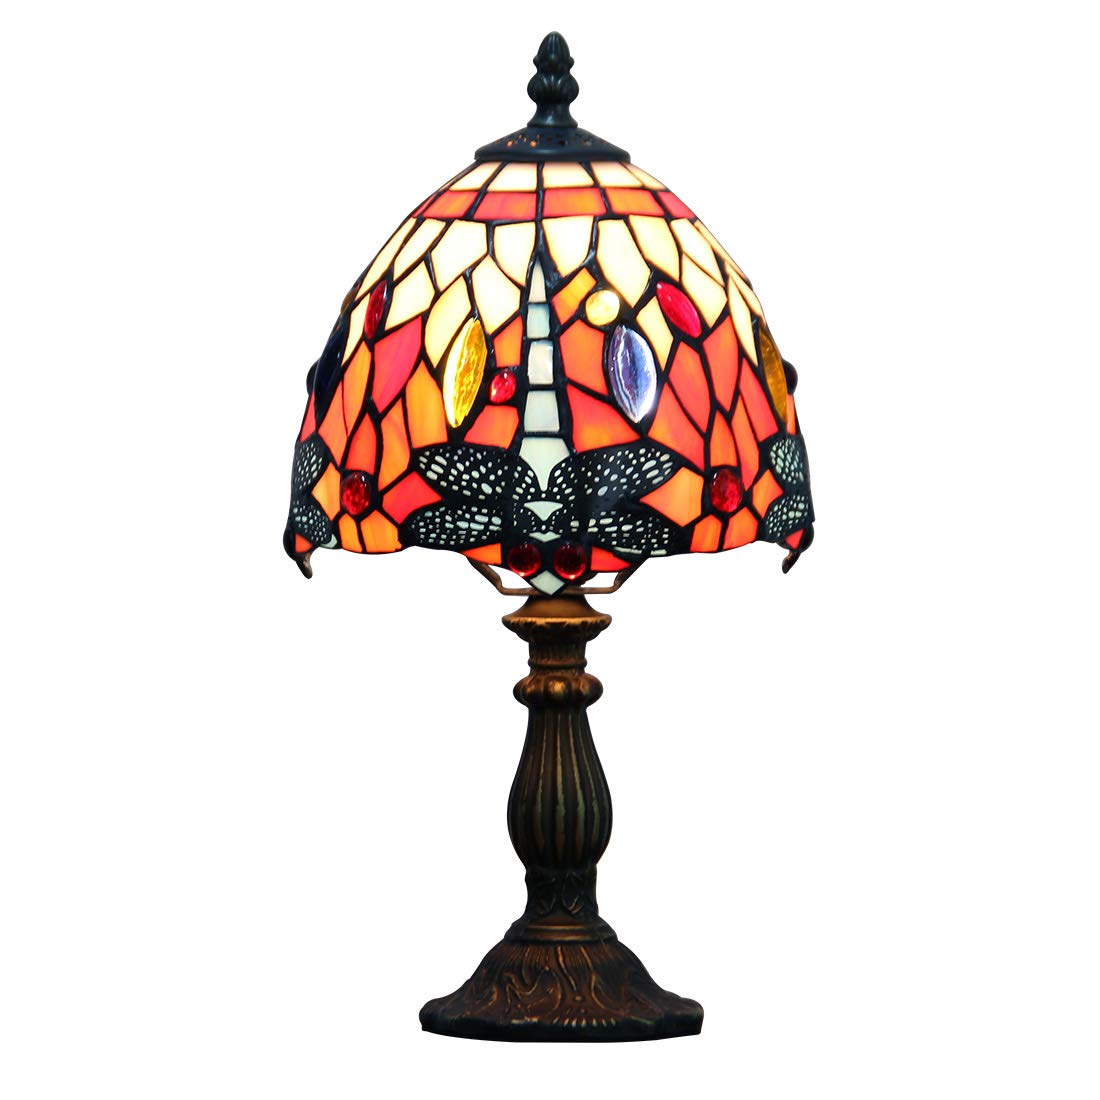 Makenier Vintage Tiffany Style Stained Glass Bedroom Bedside Corner Table Desk Red Dragonfly Small Lamp, 7 Inches Lampshade